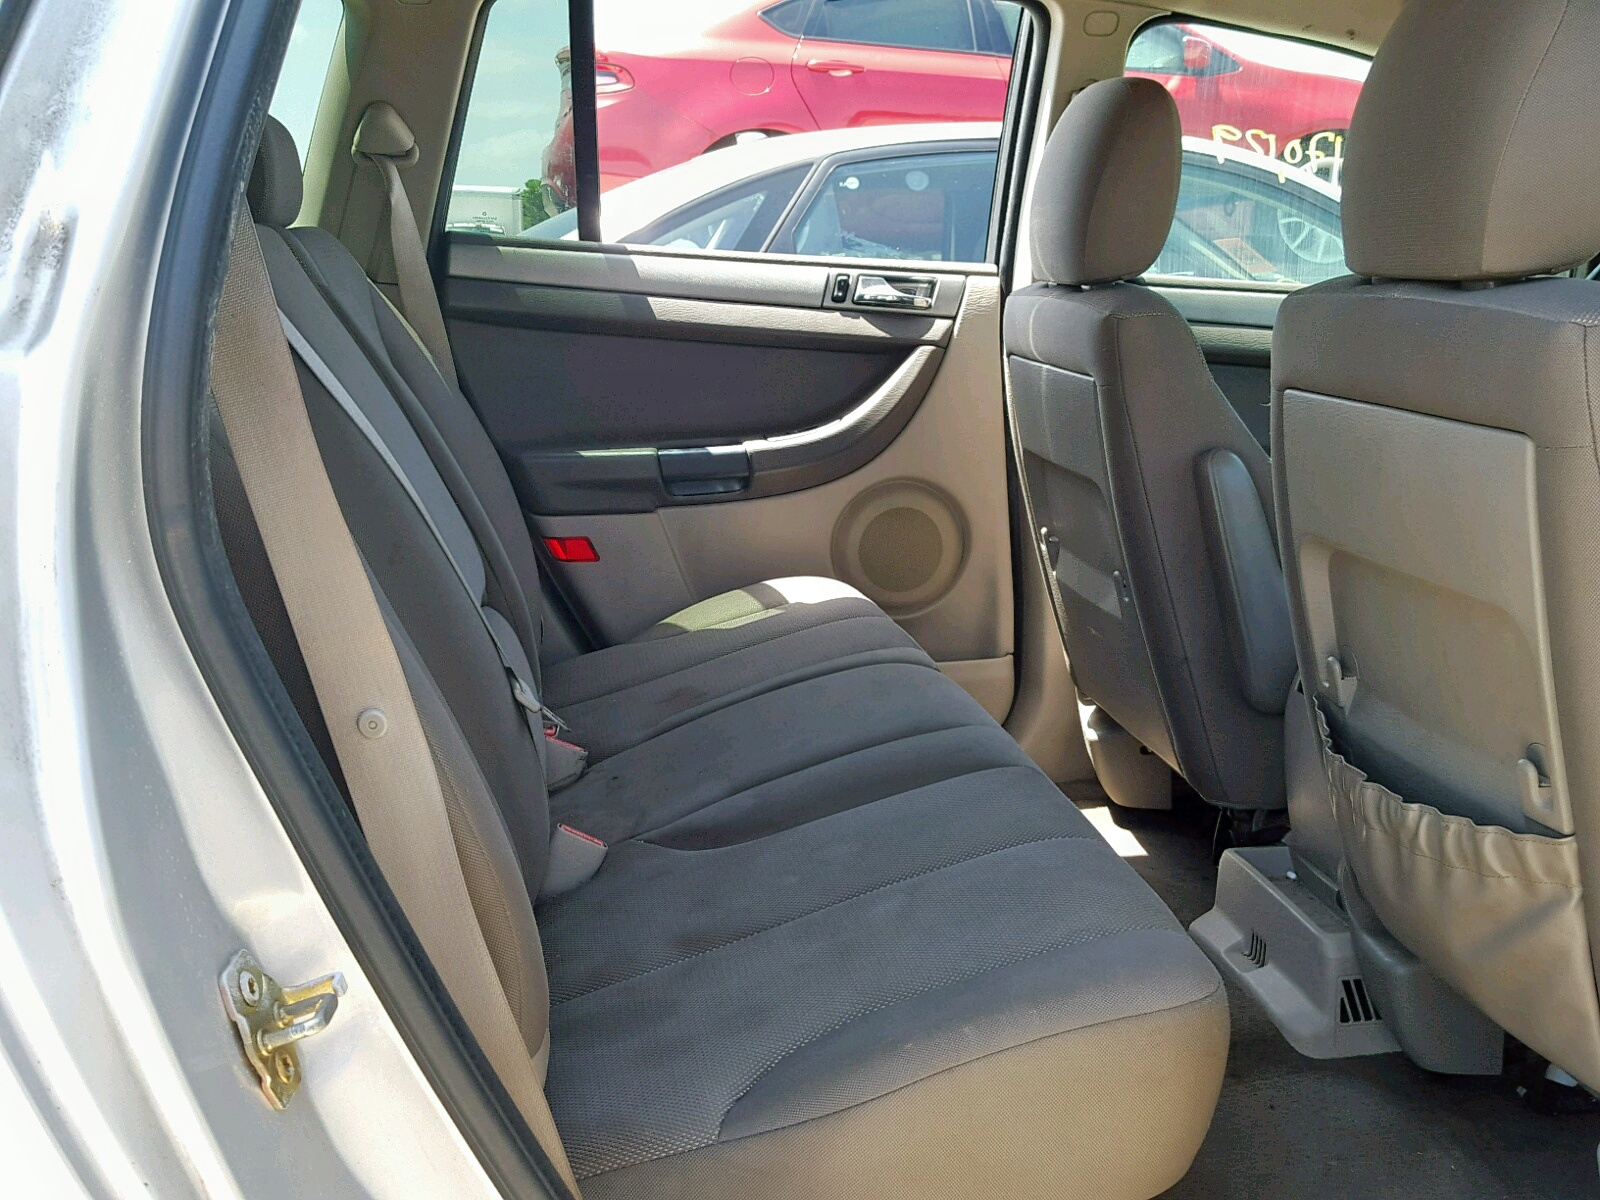 2006 Chrysler Pacifica 3 5L 6 in FL - Tampa South (2A4GM48496R610991